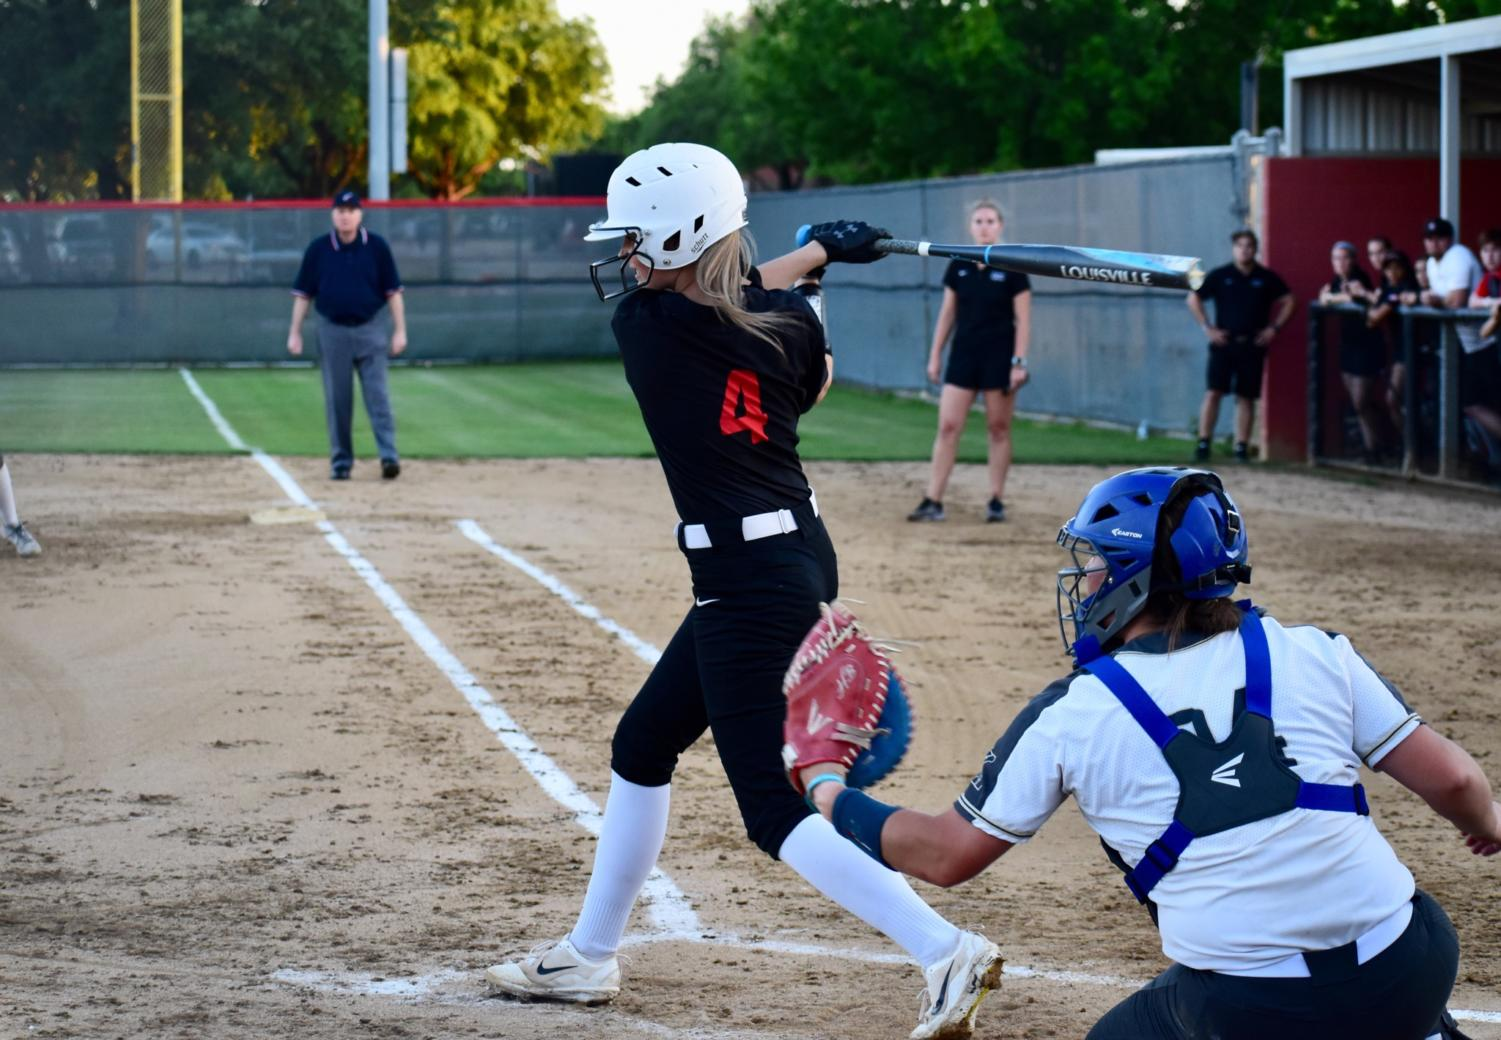 Coppell+junior+first+baseman+Olivia+Reed+bats+at+the+game+against+Keller+at+the+Colleyville+Heritage+High+School+on+Friday.+The+Cowgirls+lost%2C+5-2%2C+as+their+season+ended+in+the+first+round+of+playoffs.